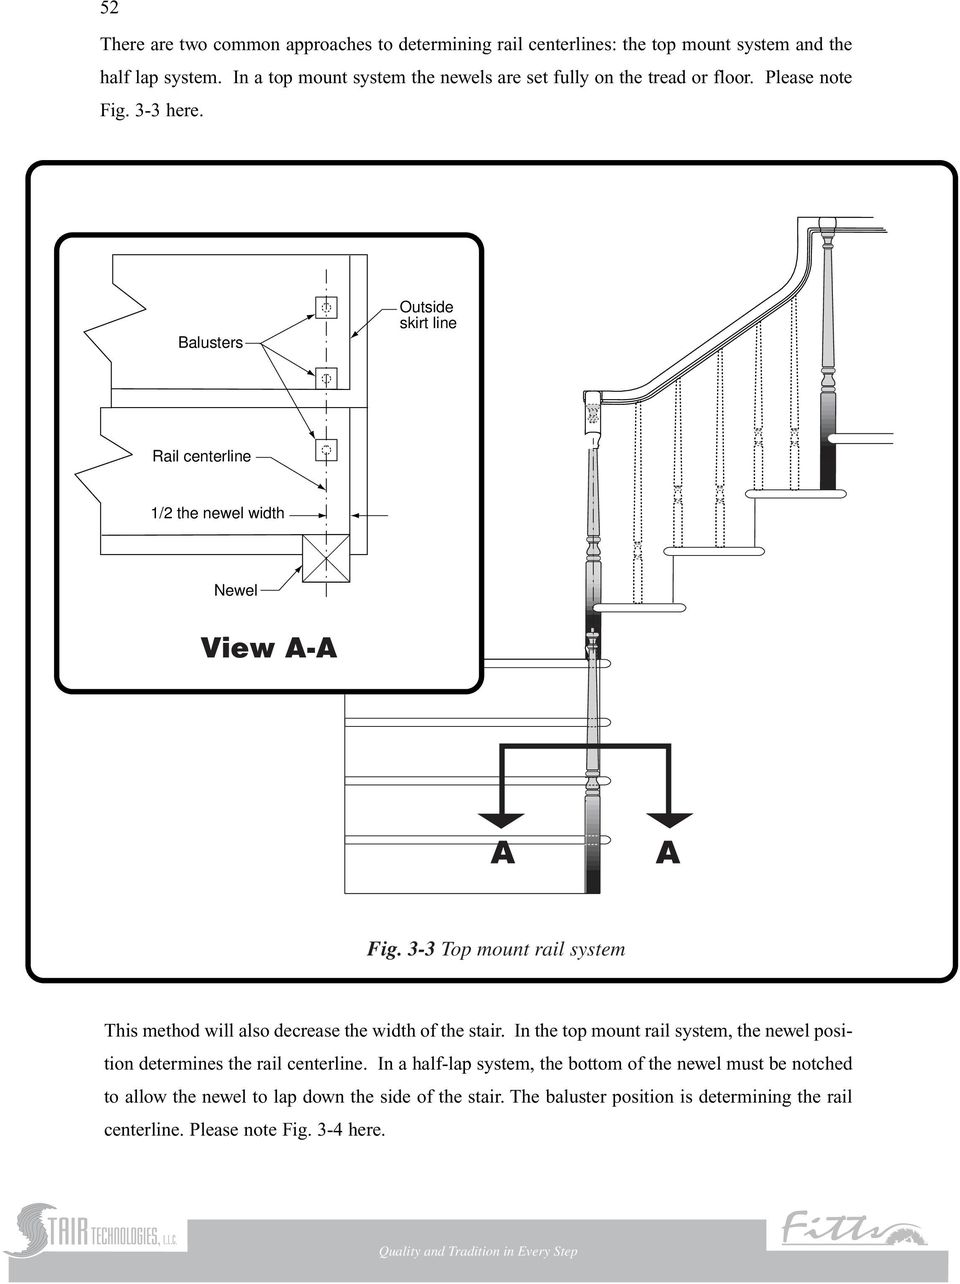 Balusters Outside skirt line Rail centerline 1/2 the newel width Newel Fig. 3-3 Top mount rail system This method will also decrease the width of the stair.